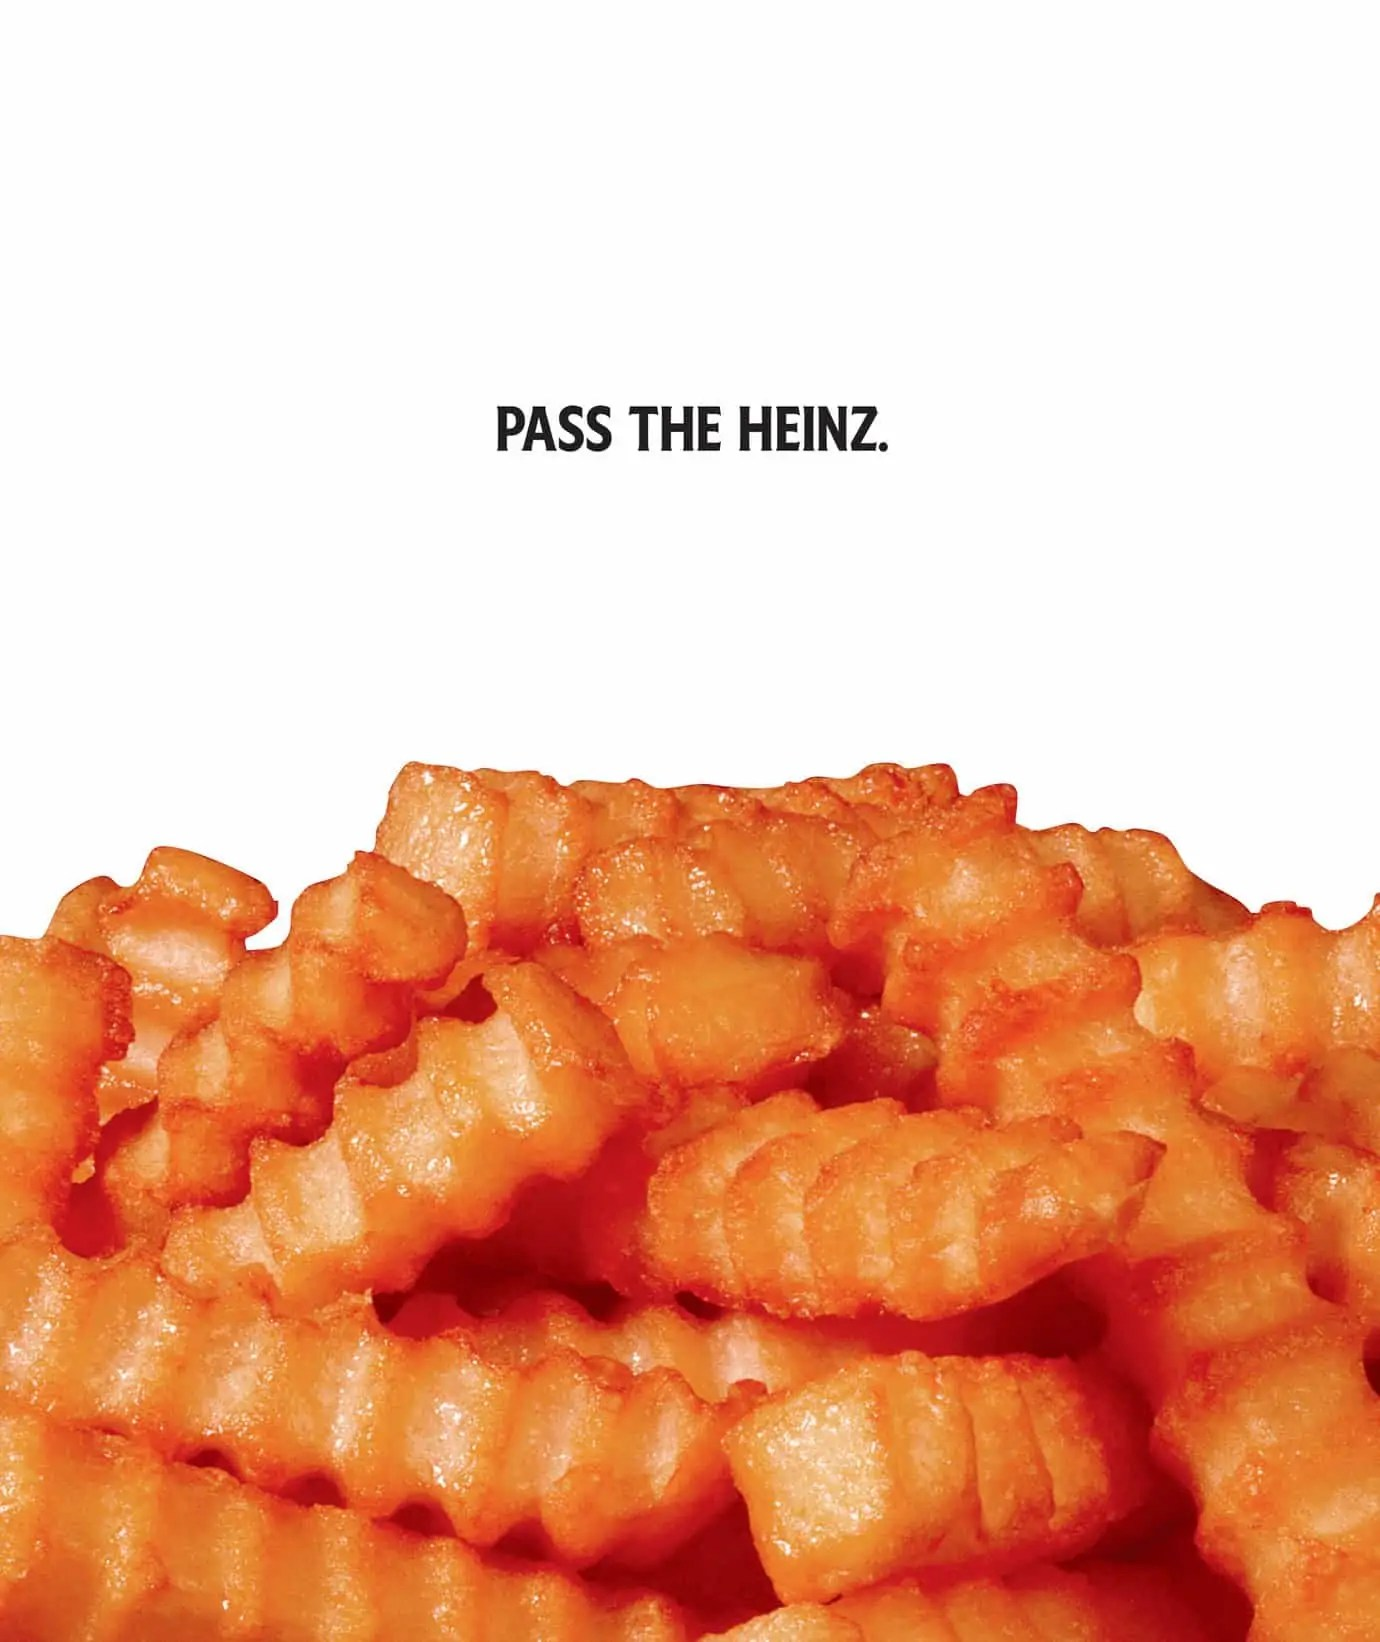 Pass-the-heinz1